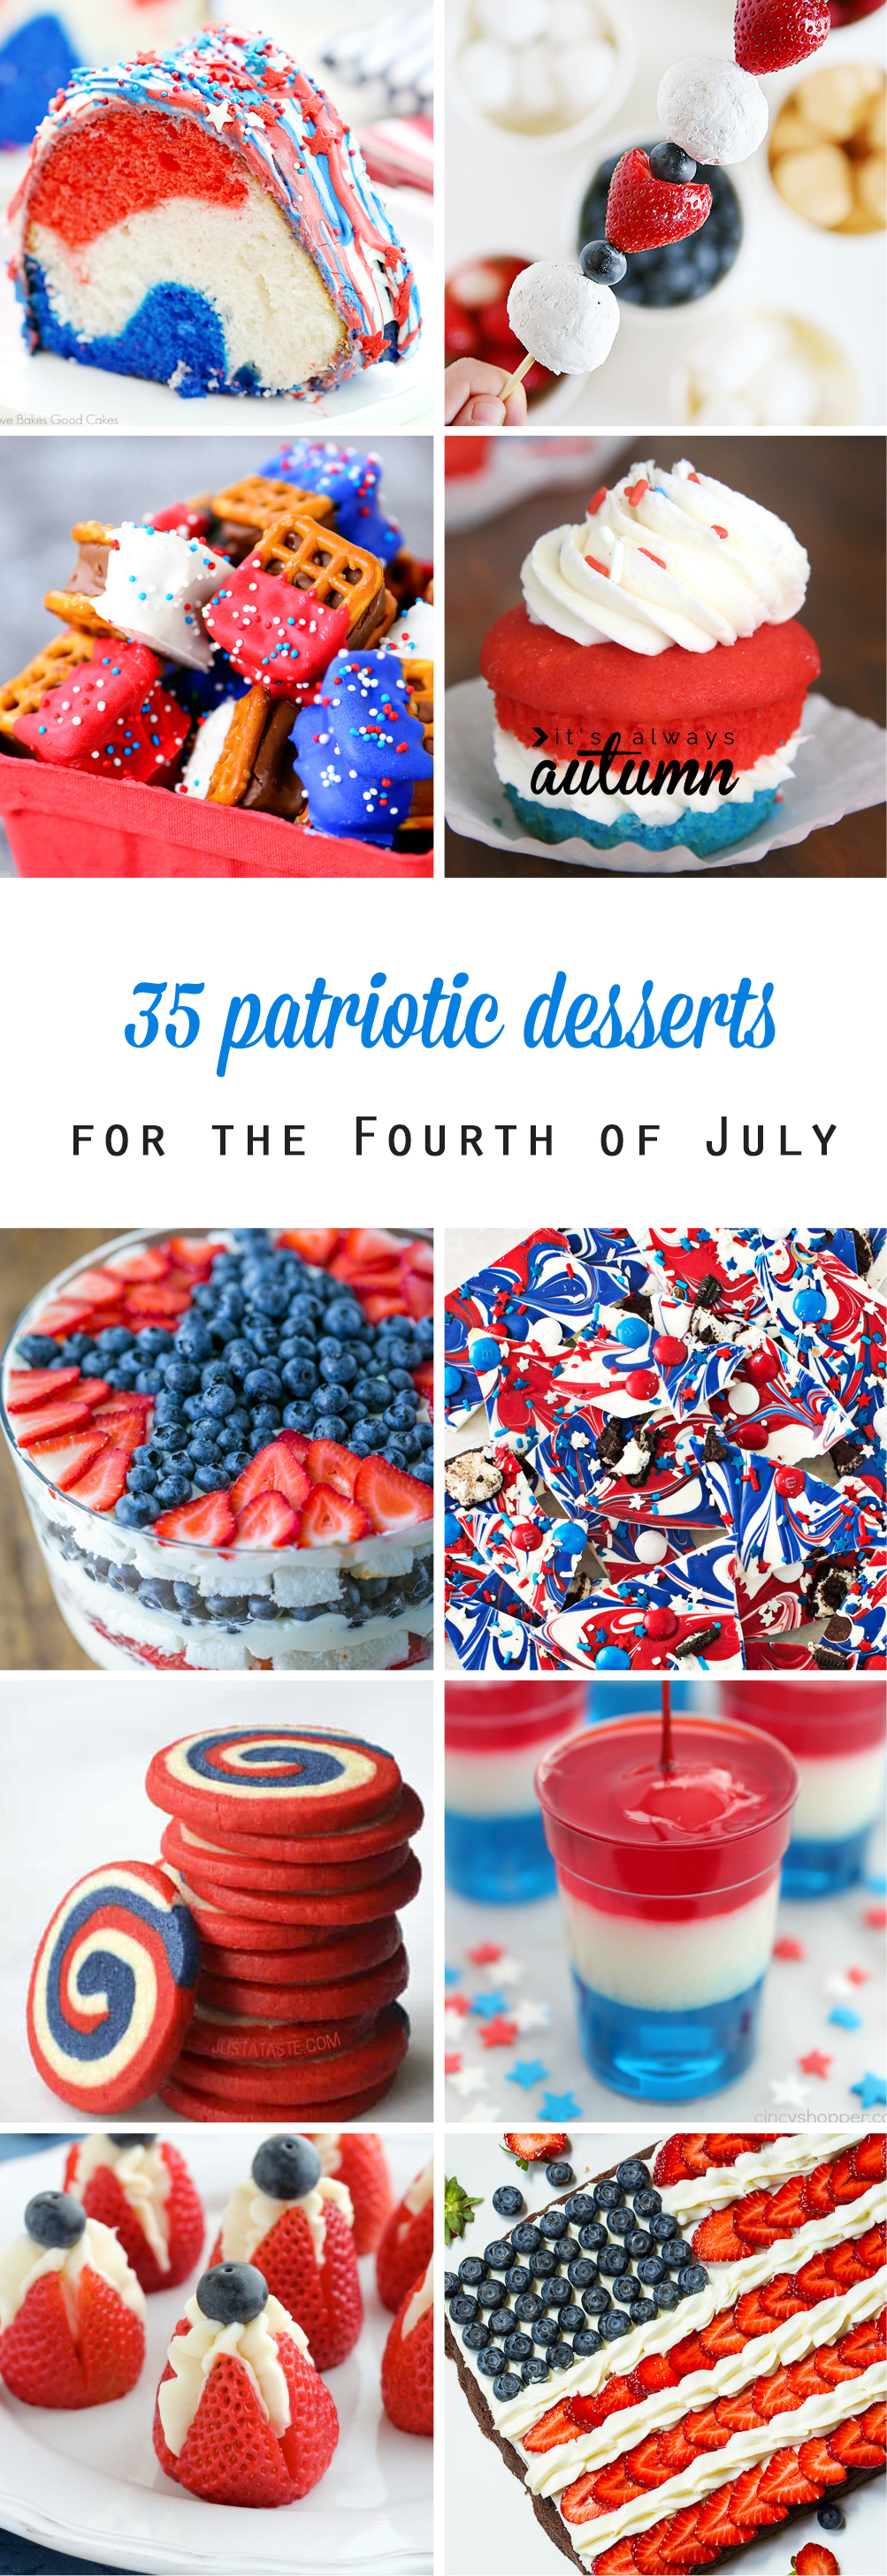 Collage of patriotic desserts for the Fourth of July